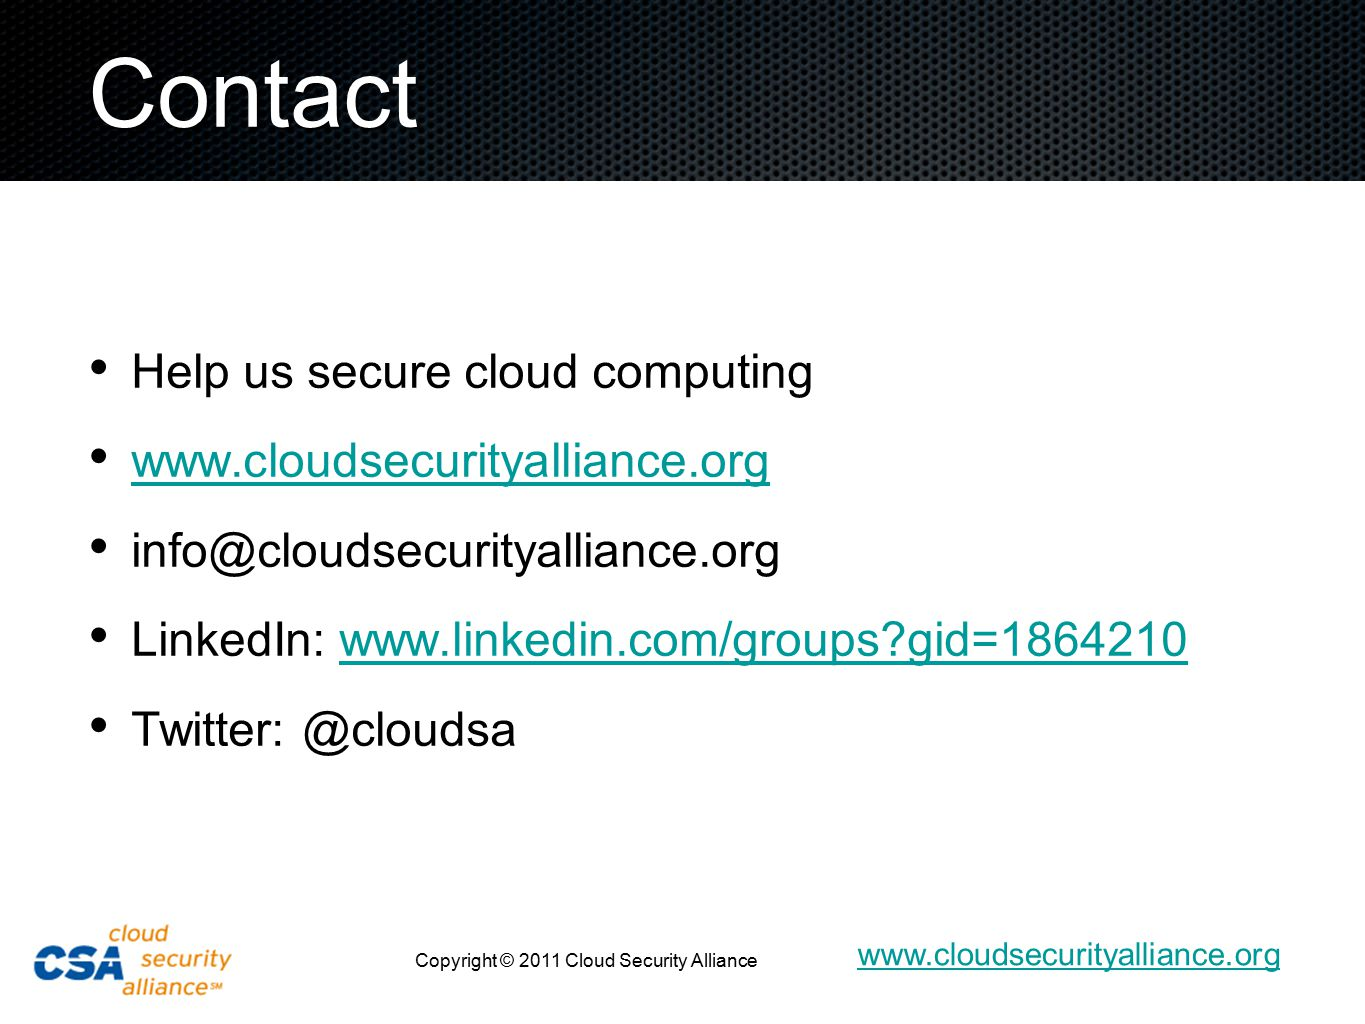 www.cloudsecurityalliance.org Copyright © 2011 Cloud Security Alliance Contact Help us secure cloud computing www.cloudsecurityalliance.org info@cloudsecurityalliance.org LinkedIn: www.linkedin.com/groups gid=1864210www.linkedin.com/groups gid=1864210 Twitter: @cloudsa